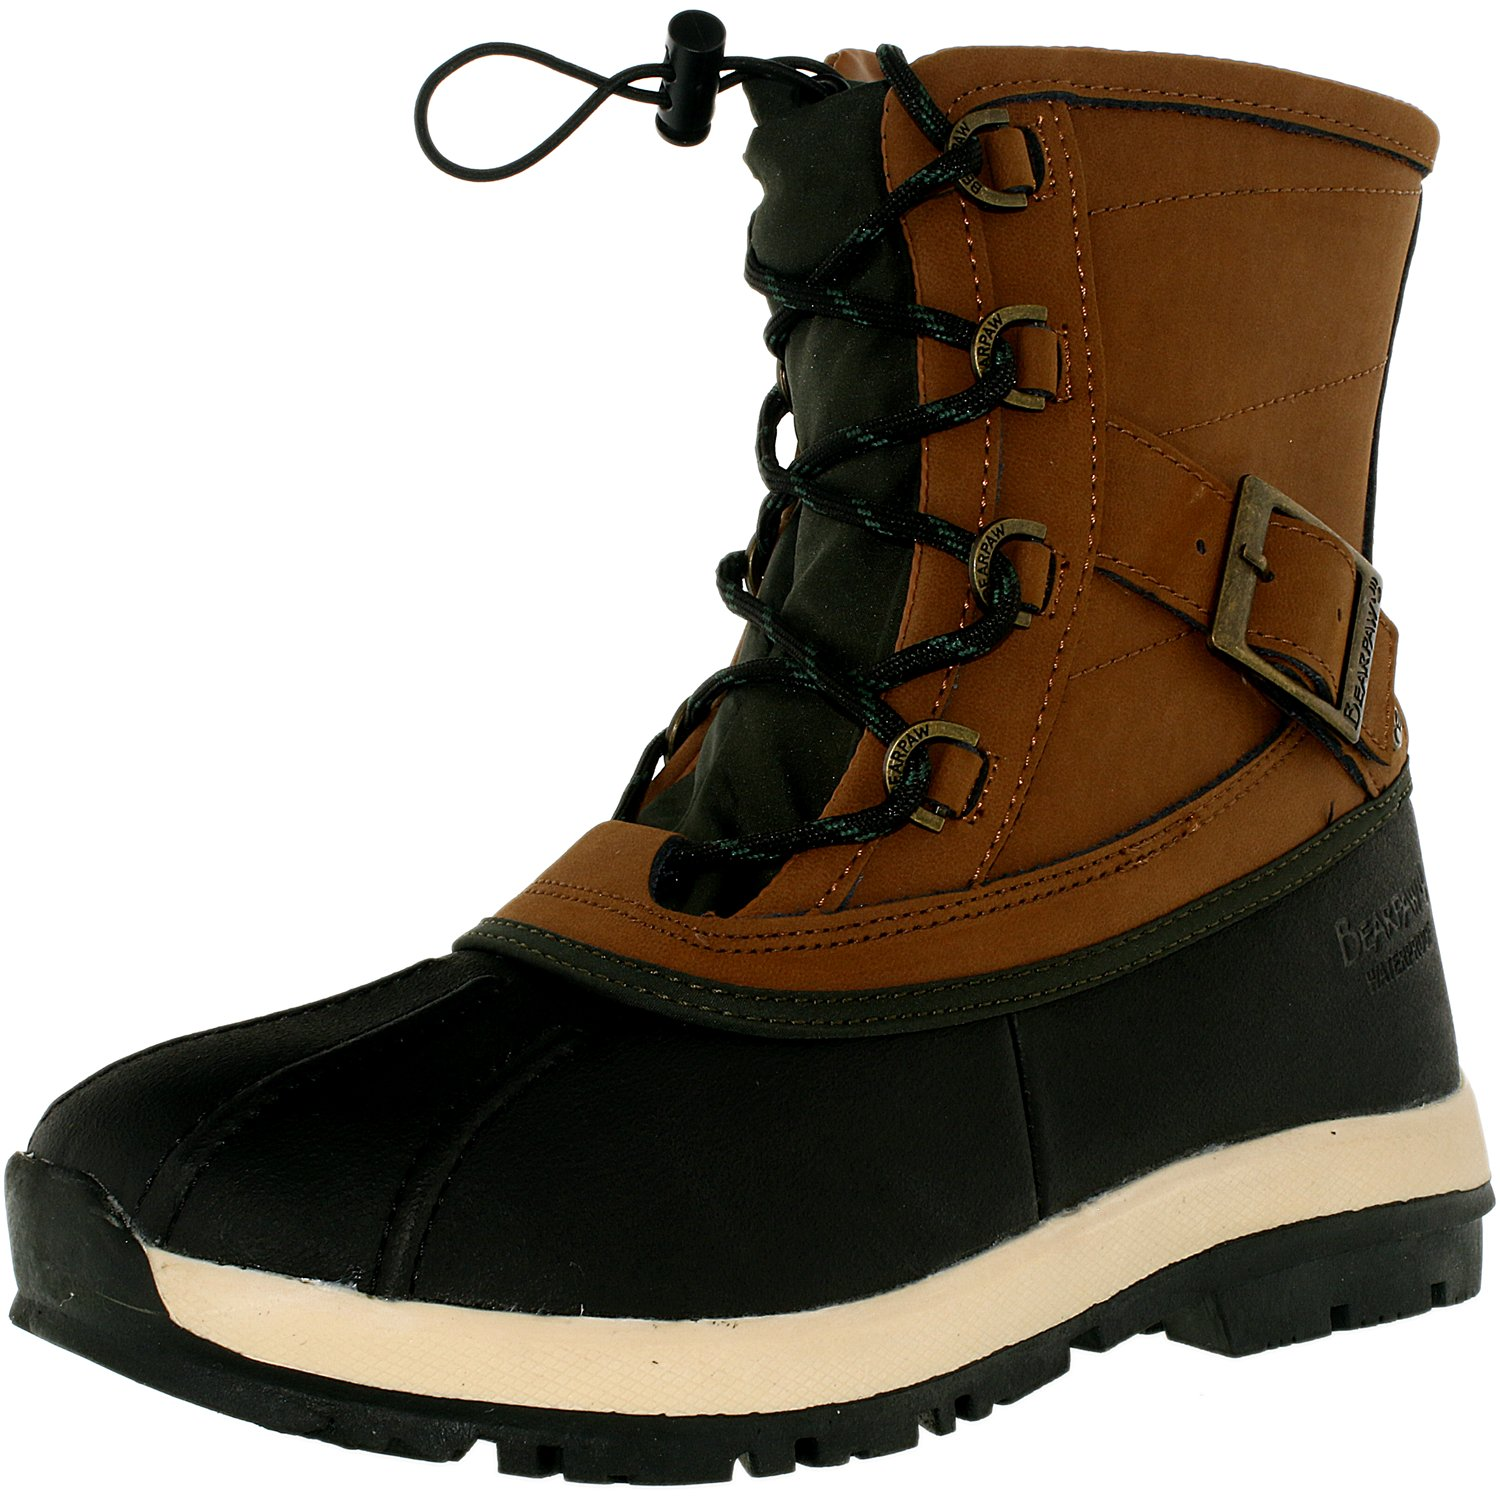 Bearpaw Women's Nelly Hickory Ii Ankle-High Leather Boot - 8M